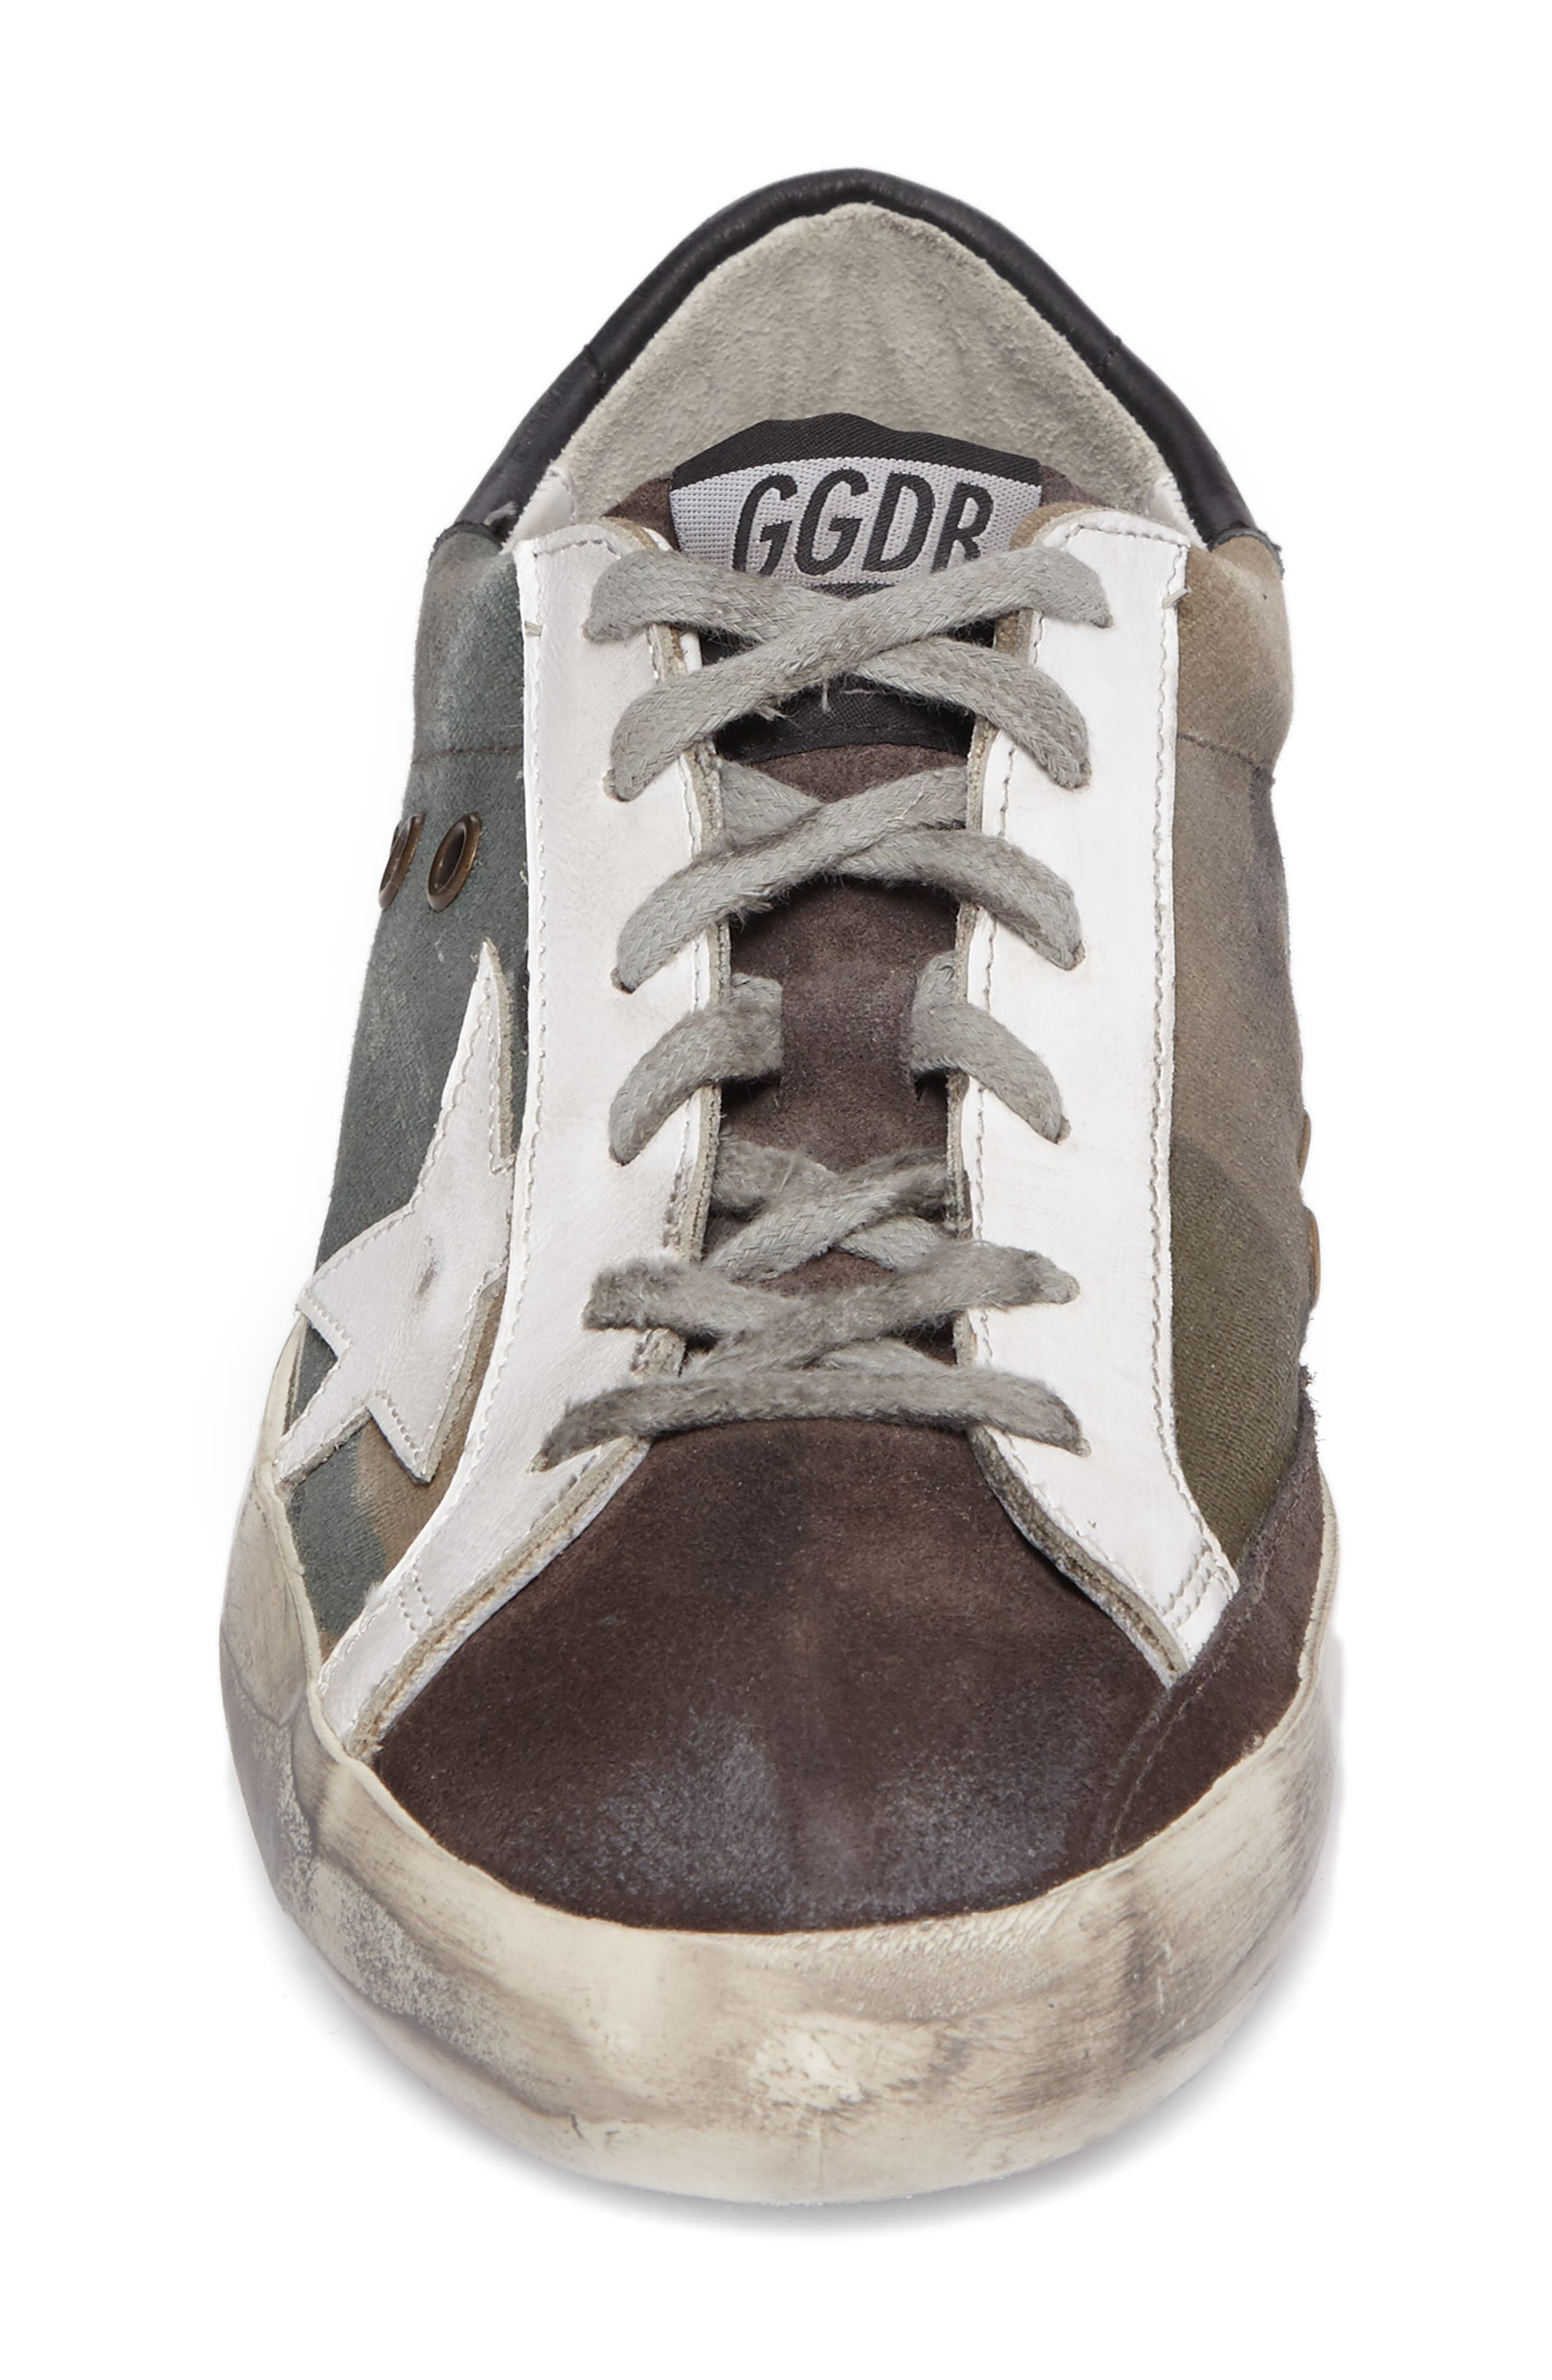 GOLDEN GOOSE,                             Superstar Low Top Sneaker,                             Alternate thumbnail 4, color,                             020